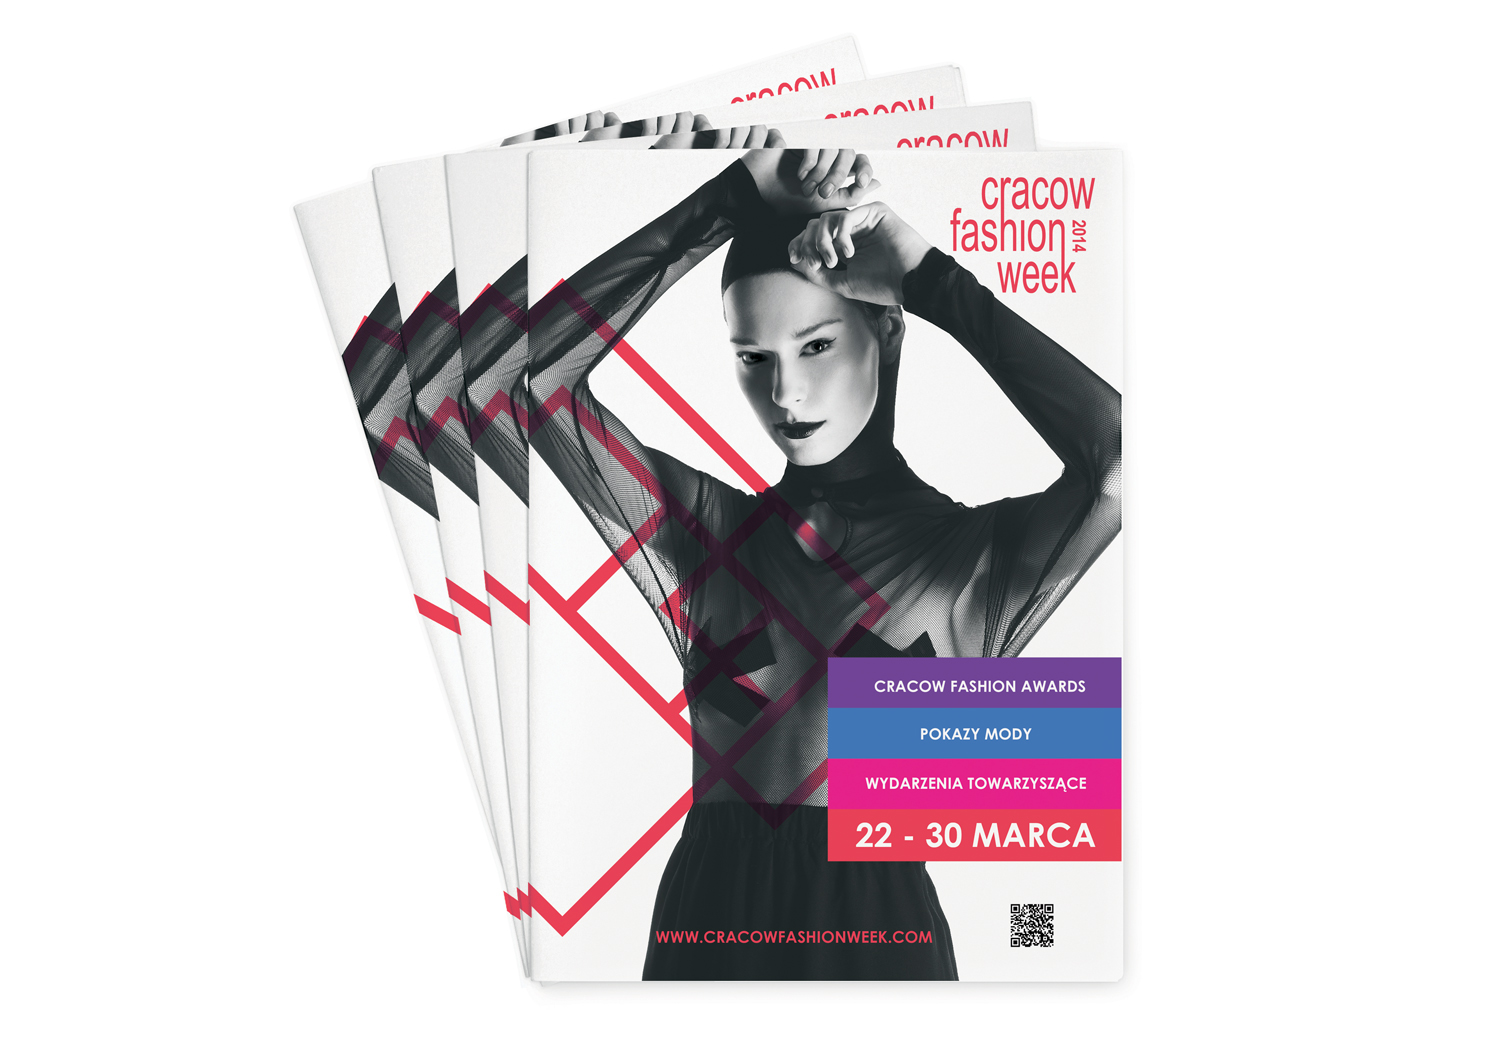 CRACOW FASHION WEEK 2014 (2)